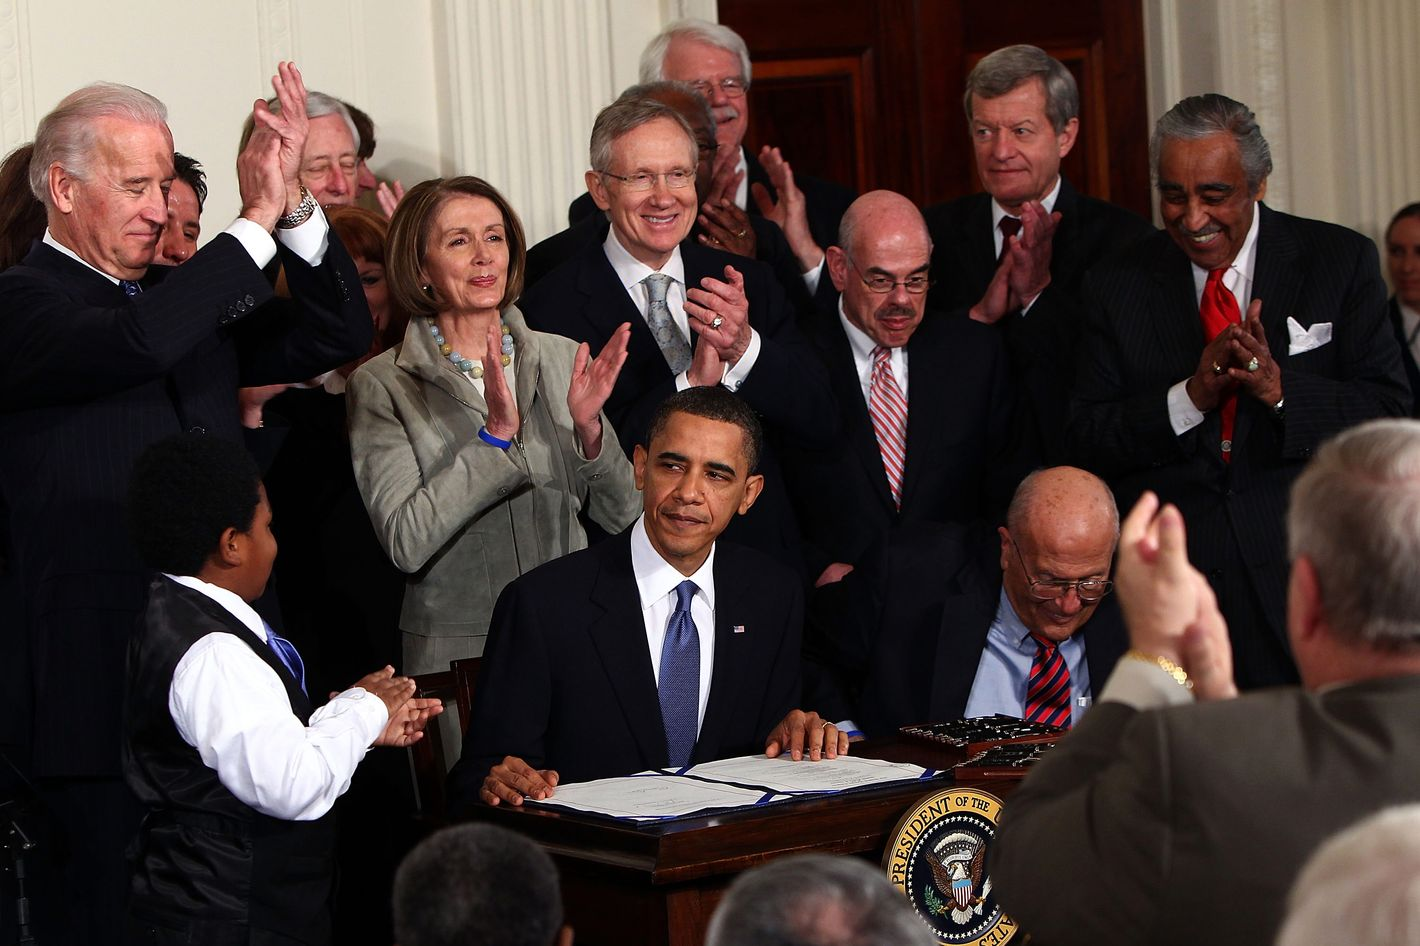 what is obama care The patient protection and affordable care act, often shortened to the affordable care act (aca) or nicknamed obamacare, is a united states federal statute enacted by the 111th united states congress and signed into law by president barack obama on march 23, 2010.